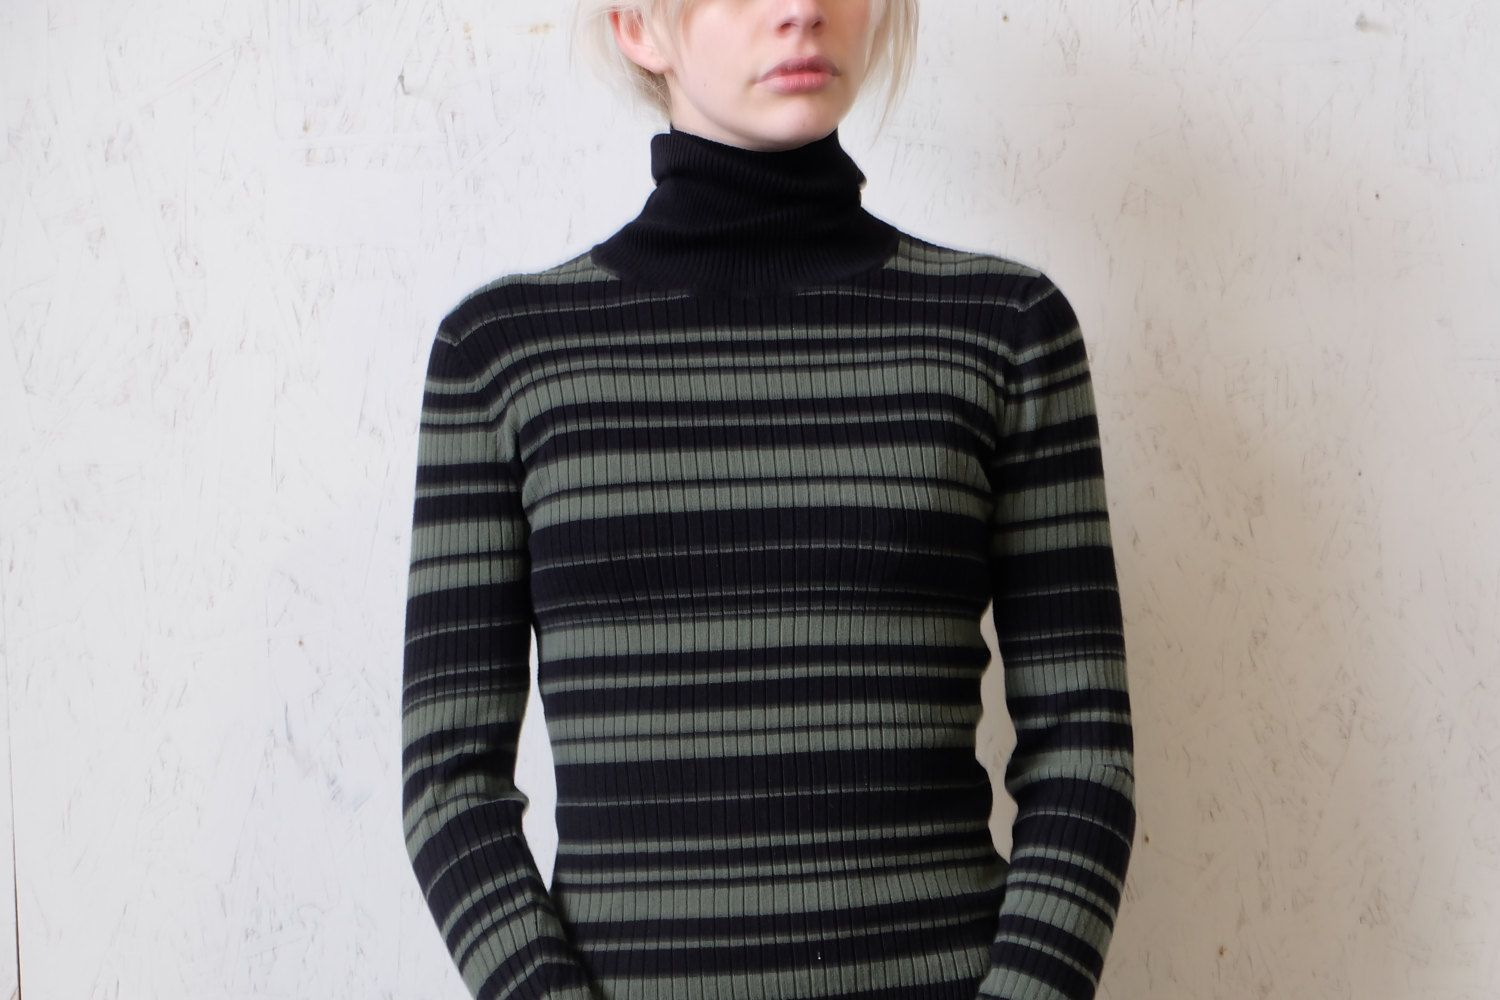 Vintage '90s Green and Black Striped Turtleneck Sweater, Fitted ...